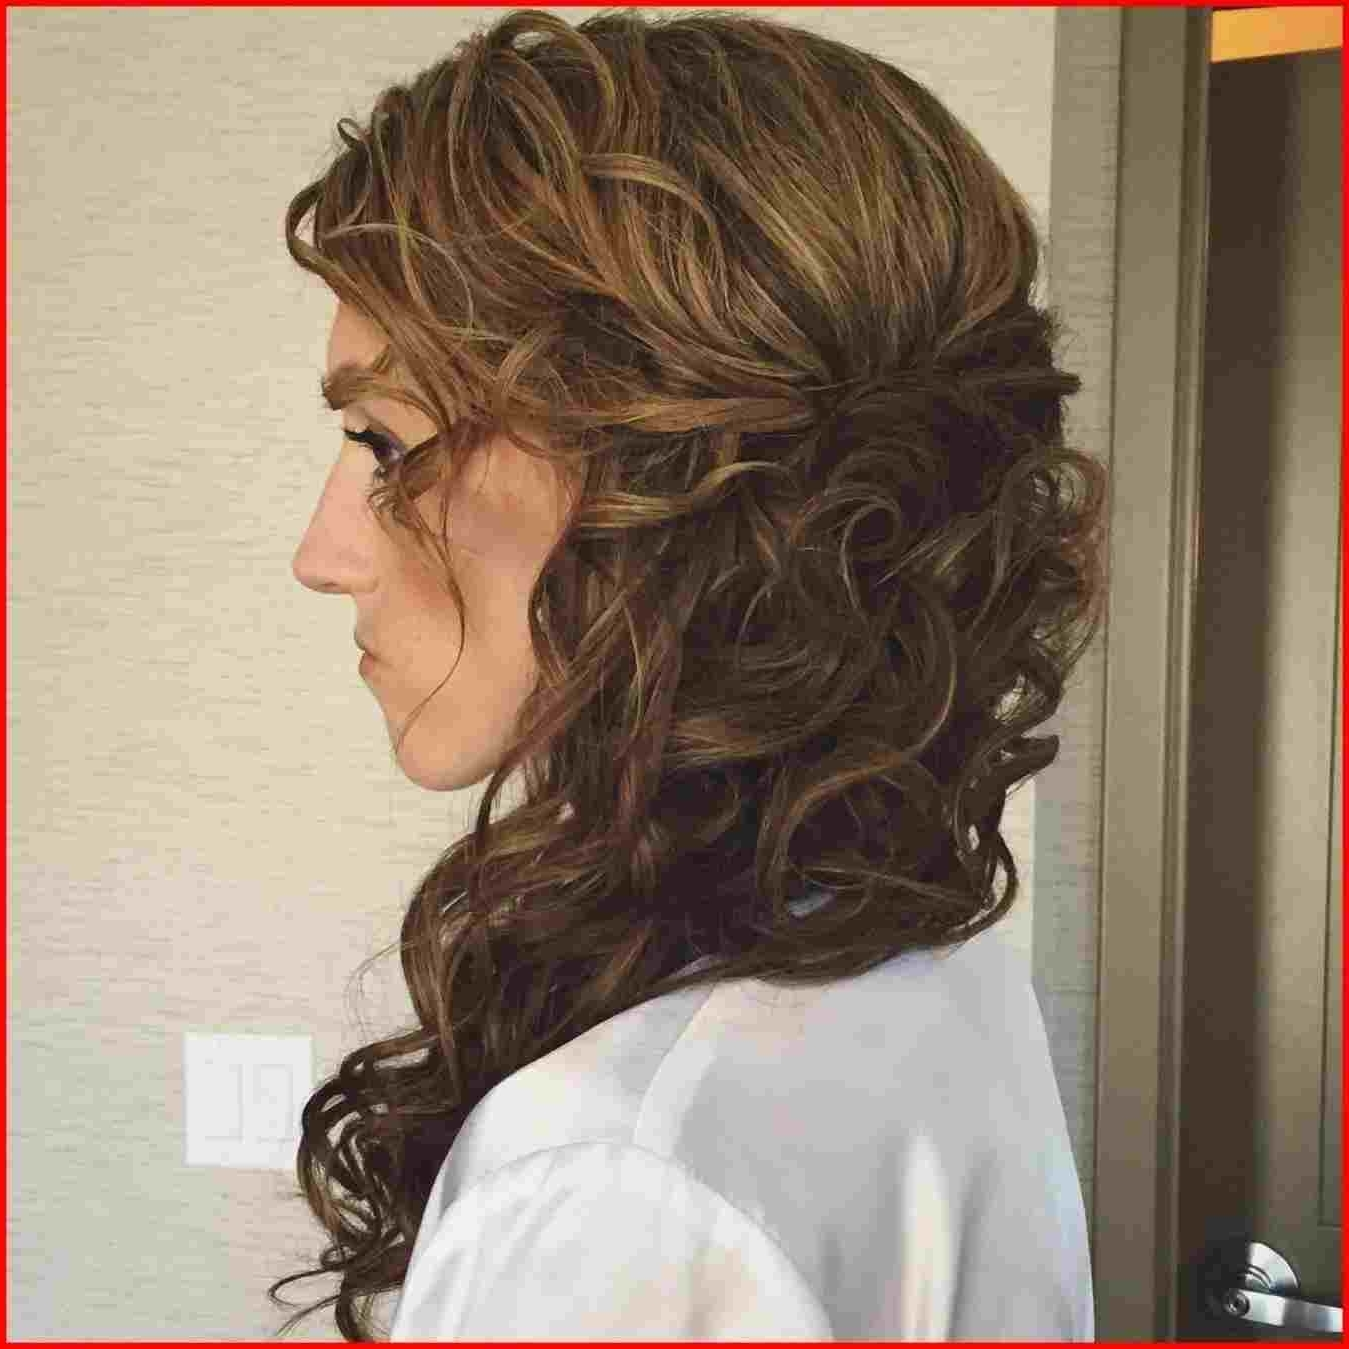 Hairstyle Hair Rhsomeonehadtowriteaboutitcom Swept Cascading Easy Intended For Preferred Ponytail Cascade Hairstyles (View 8 of 20)